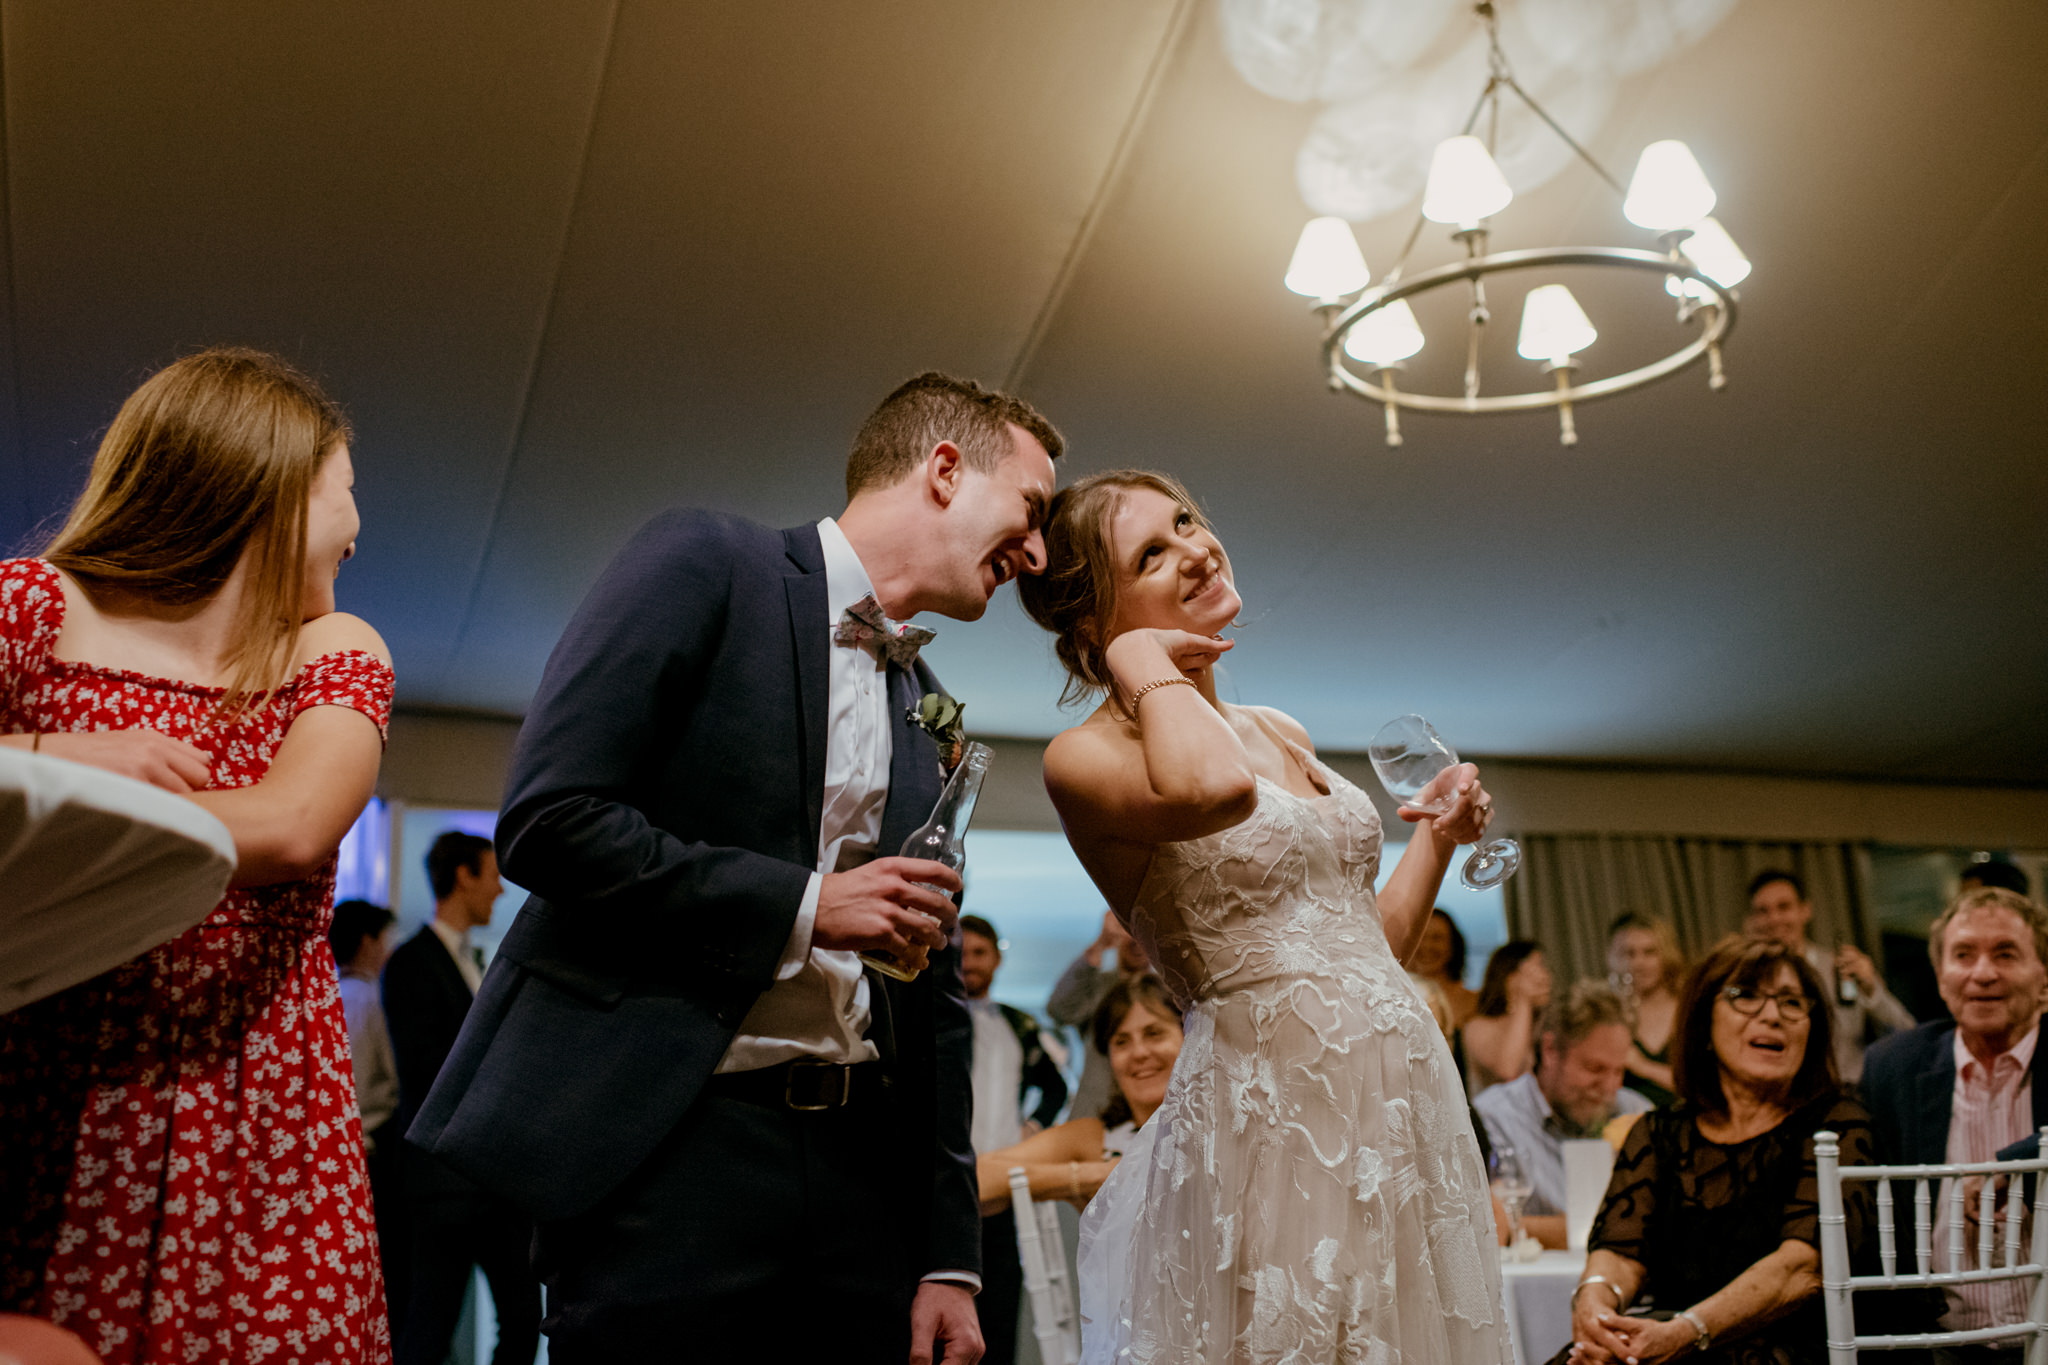 Bride with cute pose and groom laughing with her